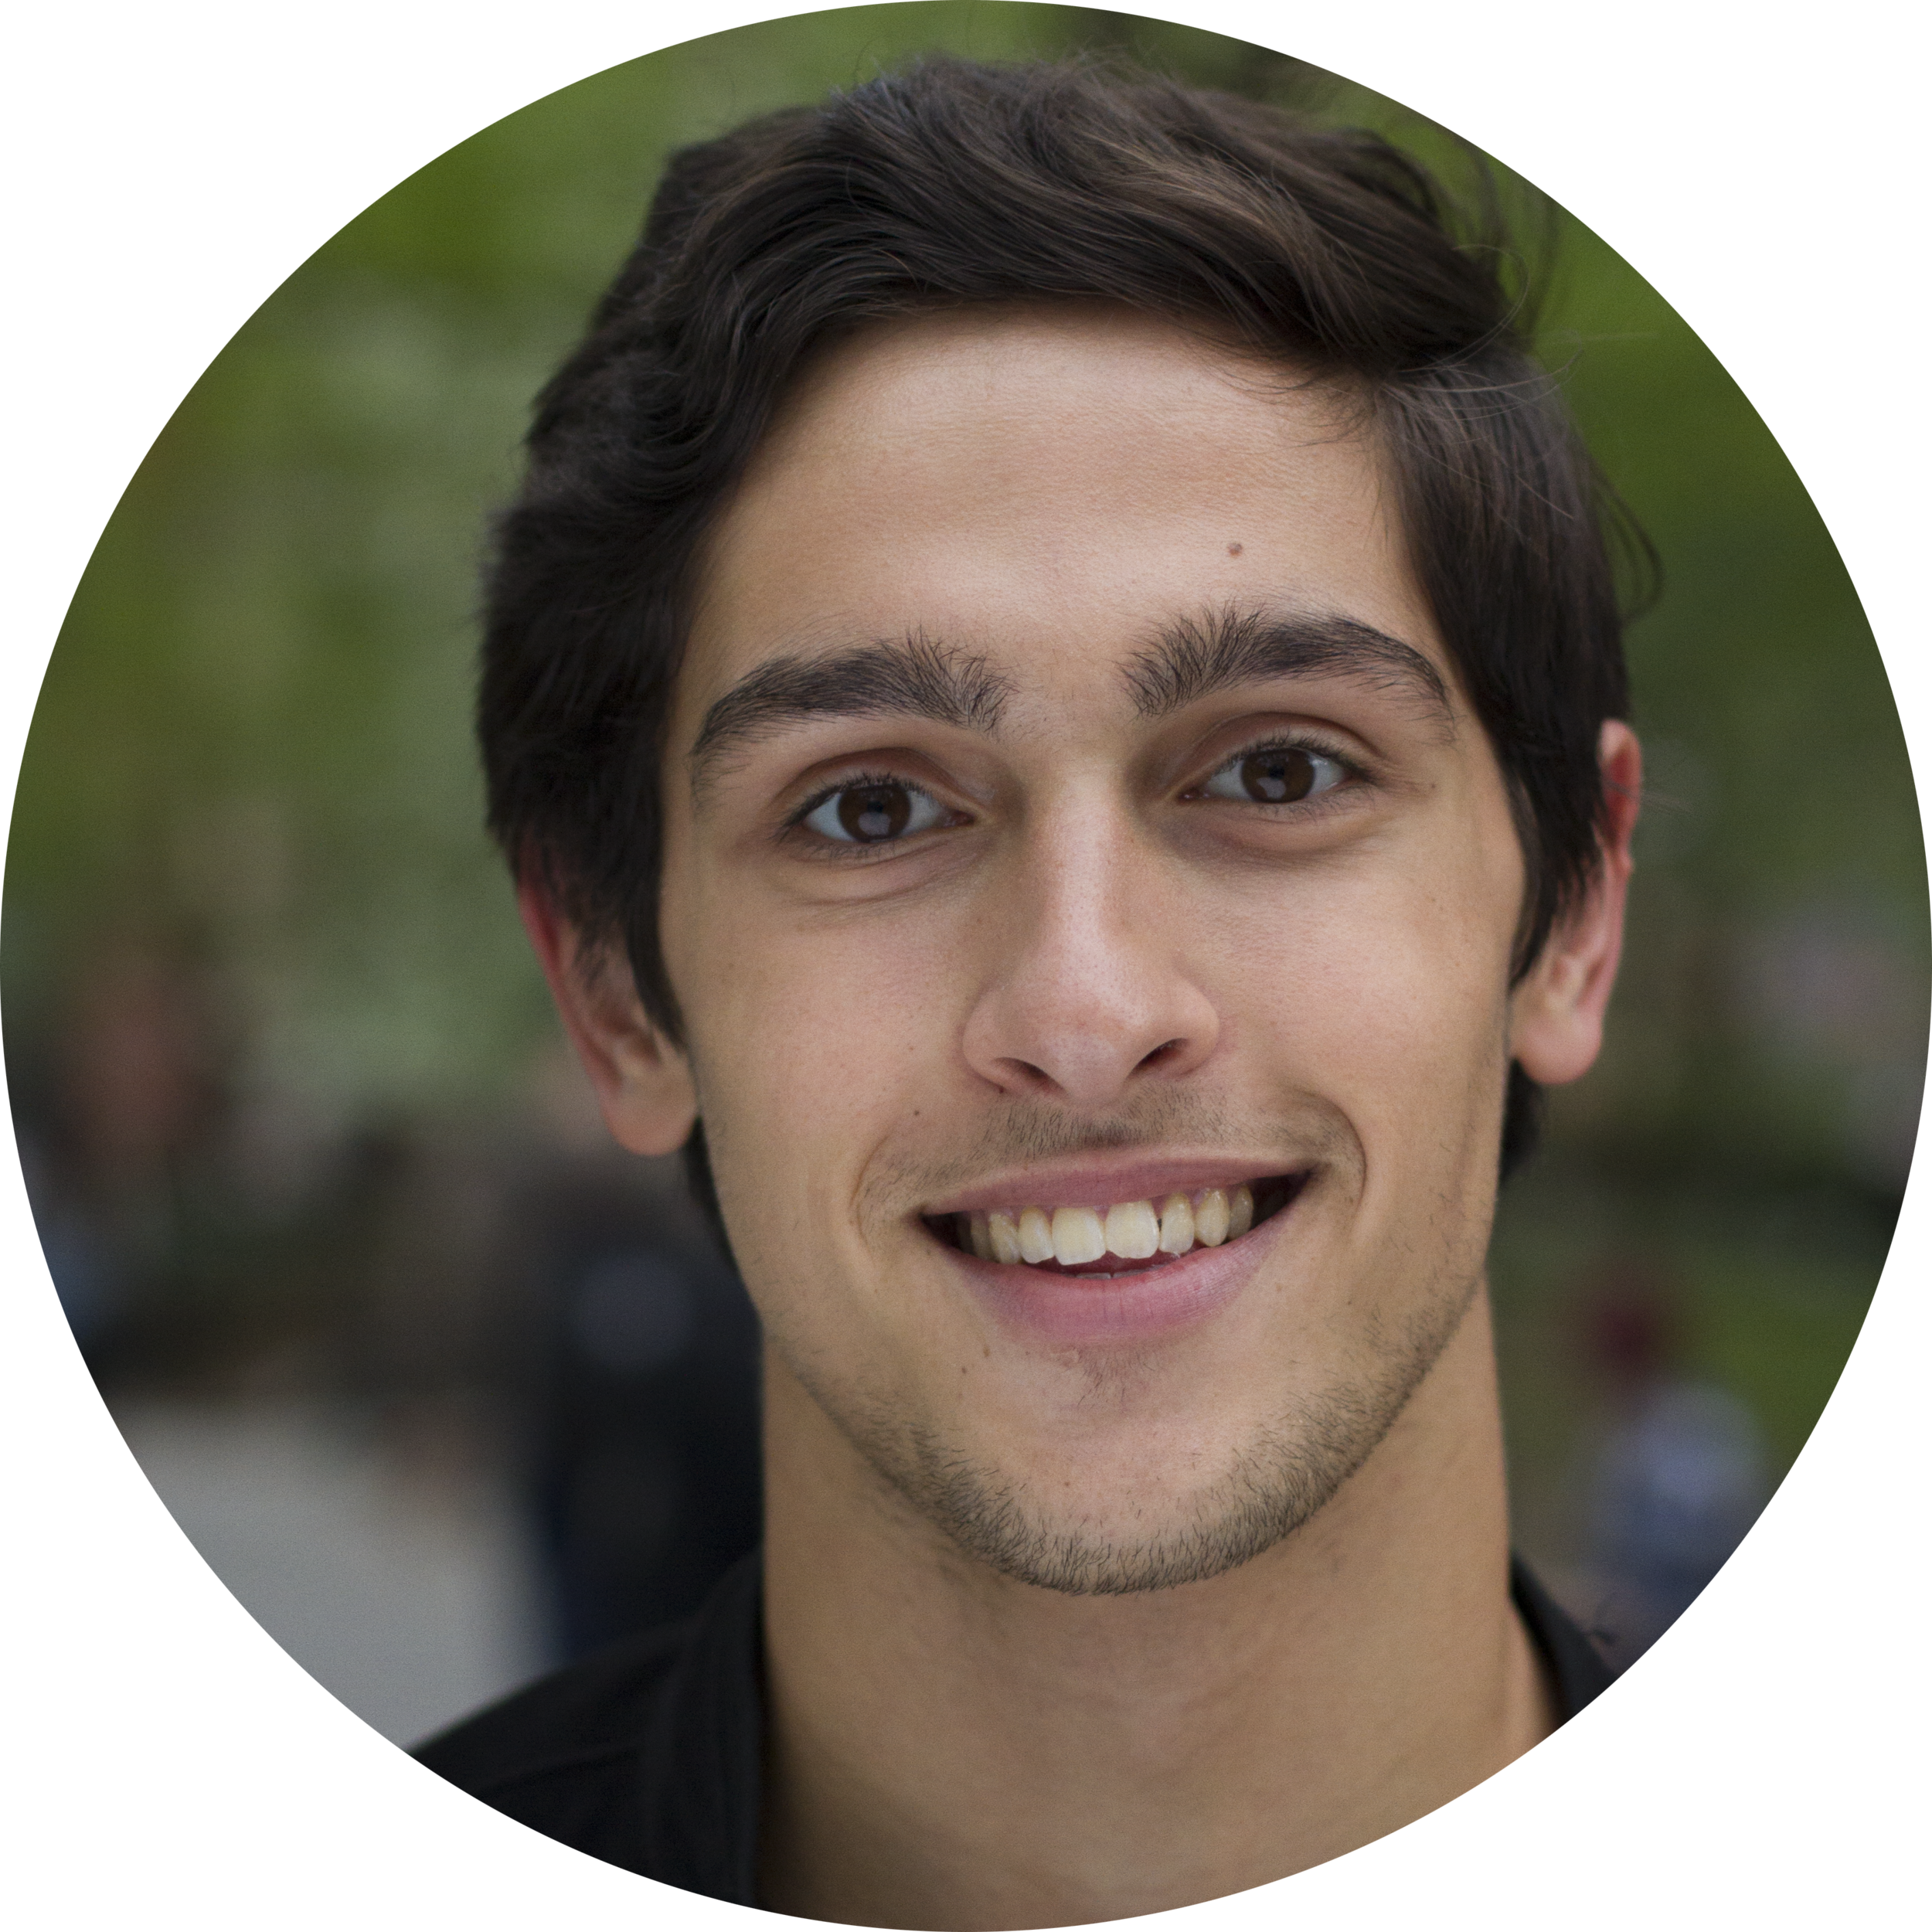 Alex Hamilton  Architecture Team - Vocational Wing Design Lead  Alex is a sophomore at NYU Tandon studying Sustainable Urban Environments. He enjoys learning about architecture and is a store designer for St Laurent. Alex is also proudly a member of NYU AEPi.